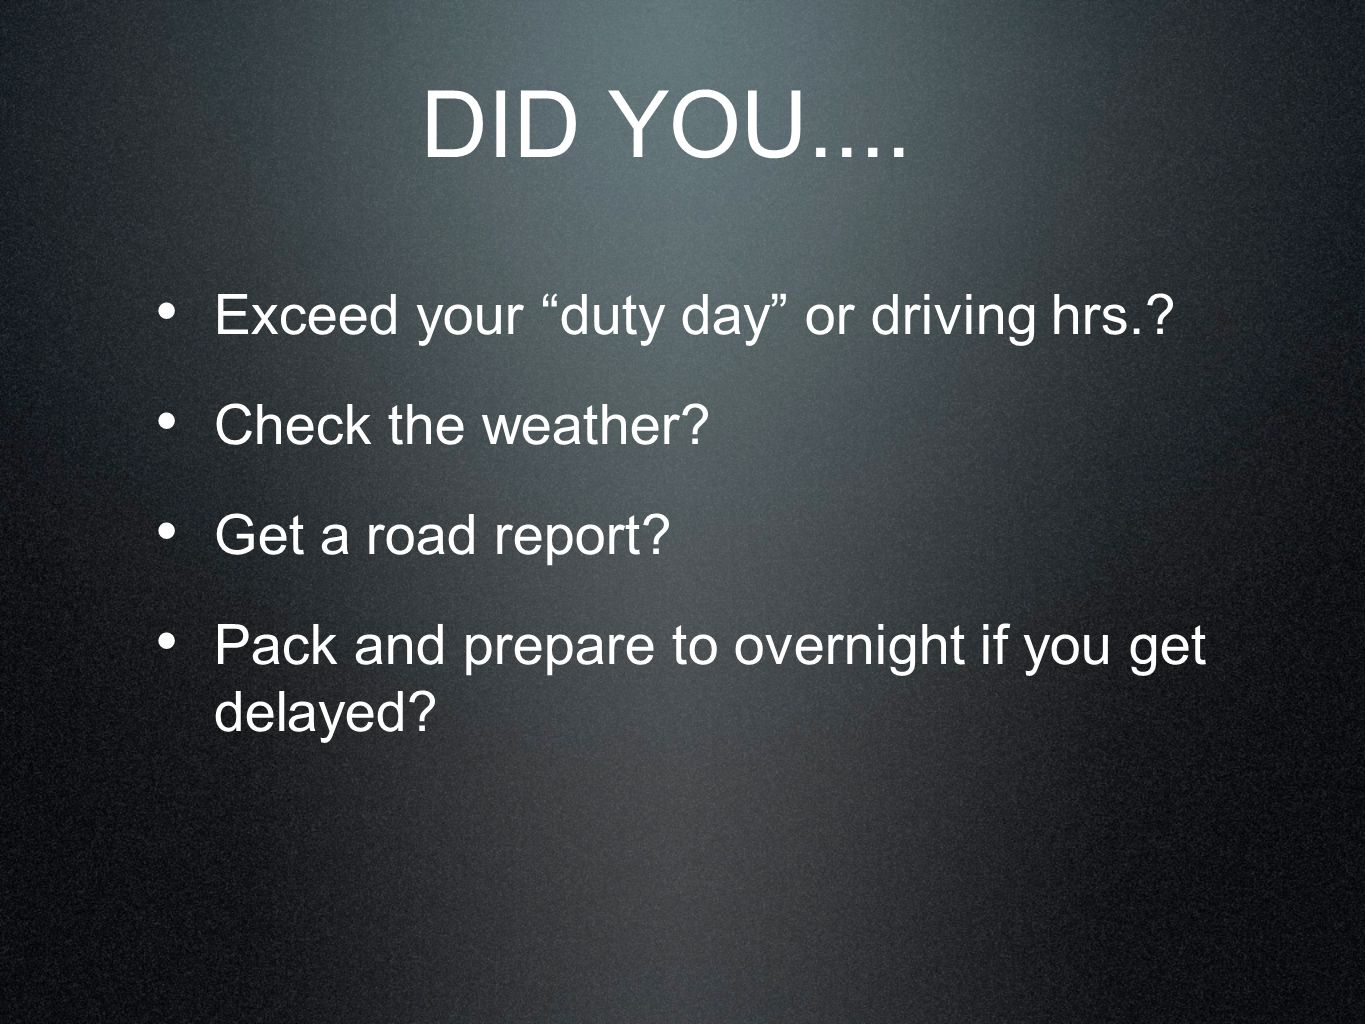 DID YOU.... Exceed your duty day or driving hrs. Check the weather